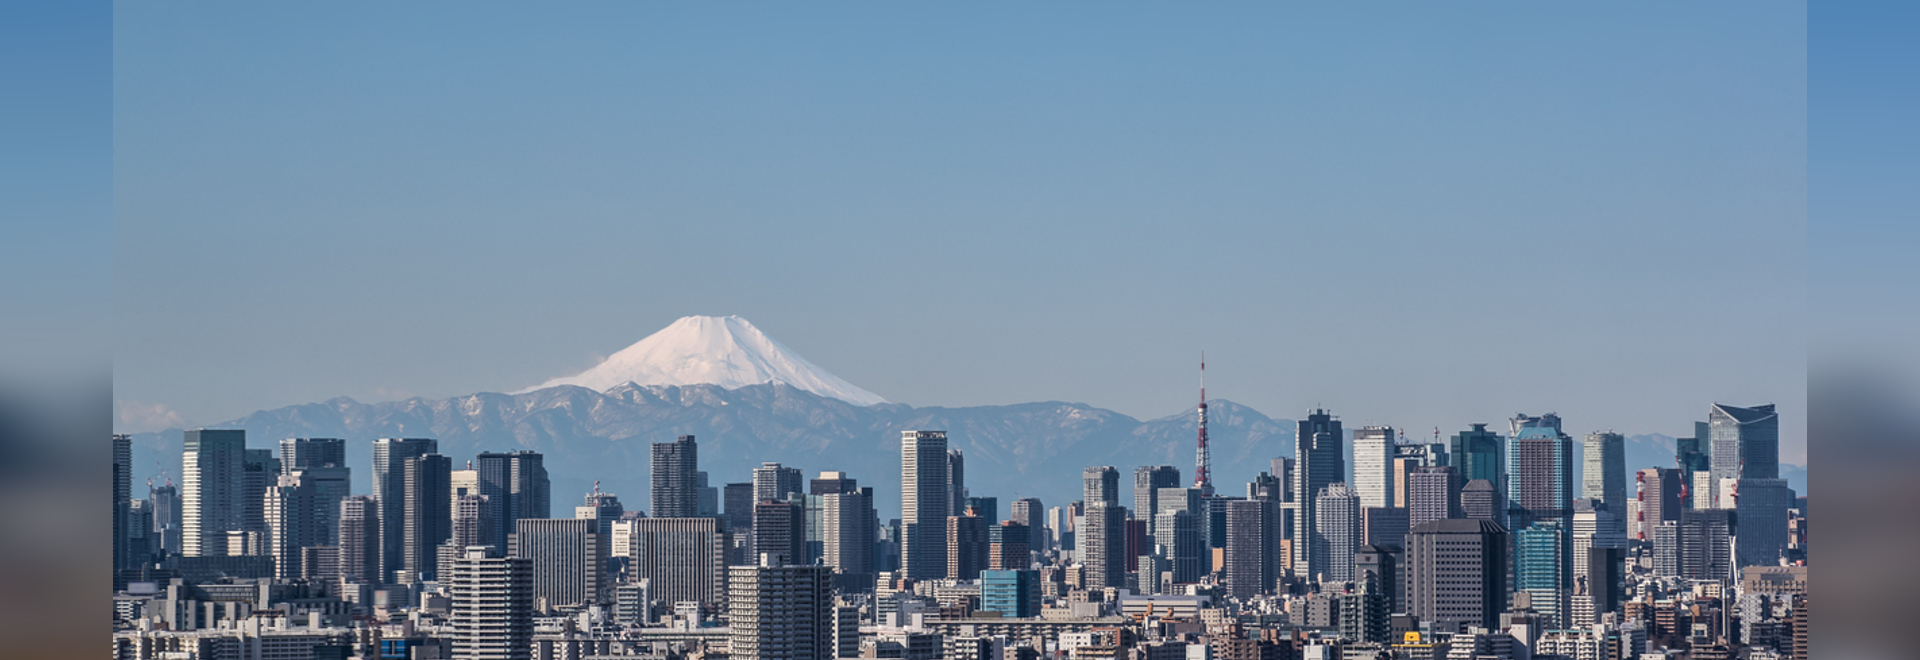 Tokyo city view , Tokyo downtown building and Tokyo tower landmark with Mountain Fuji on a clear day. Tokyo Metropolis is the capital of Japan and one of its 47 prefectures.